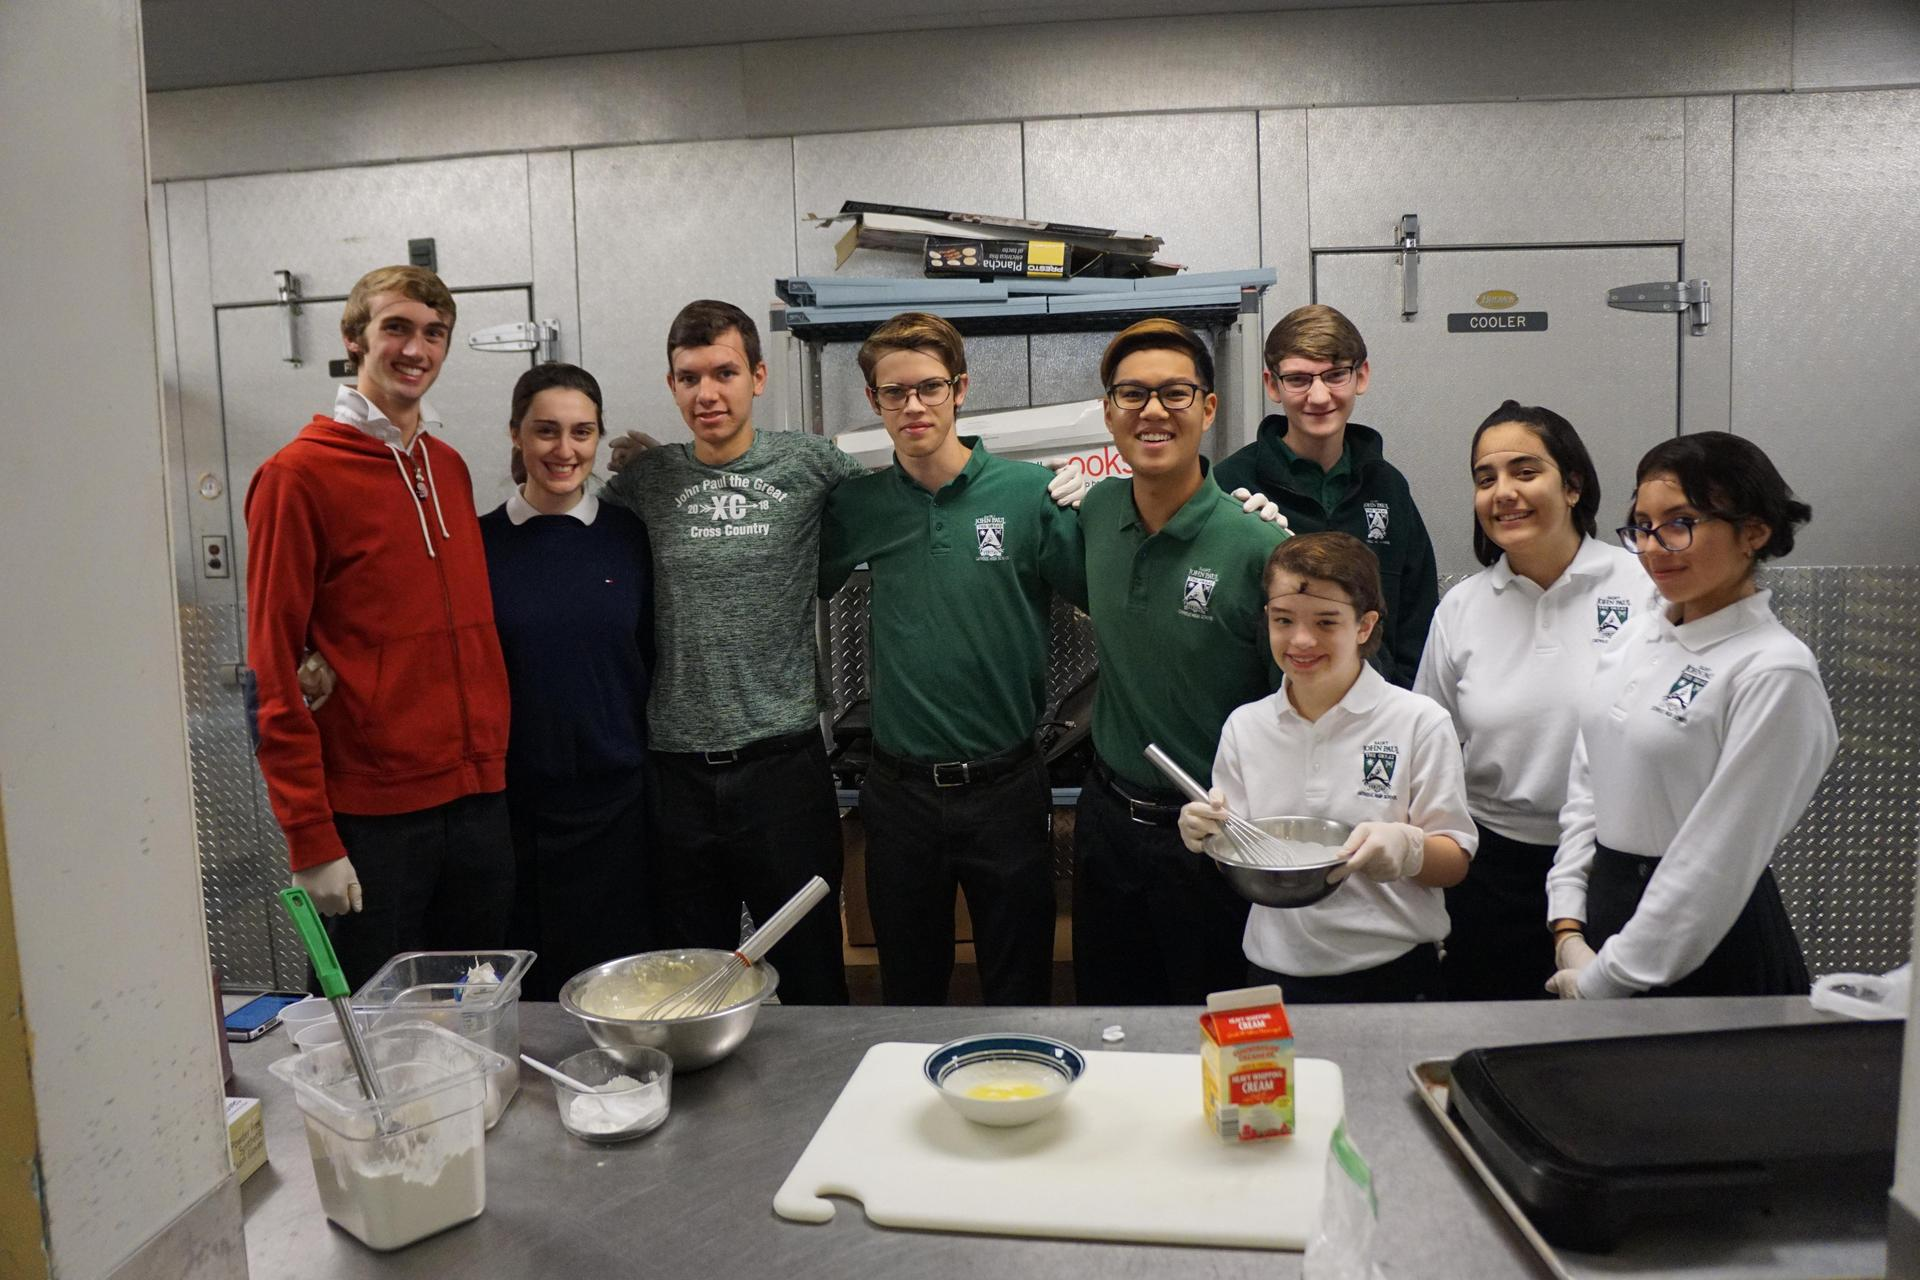 Members of the cooking club gathered in the kitchen